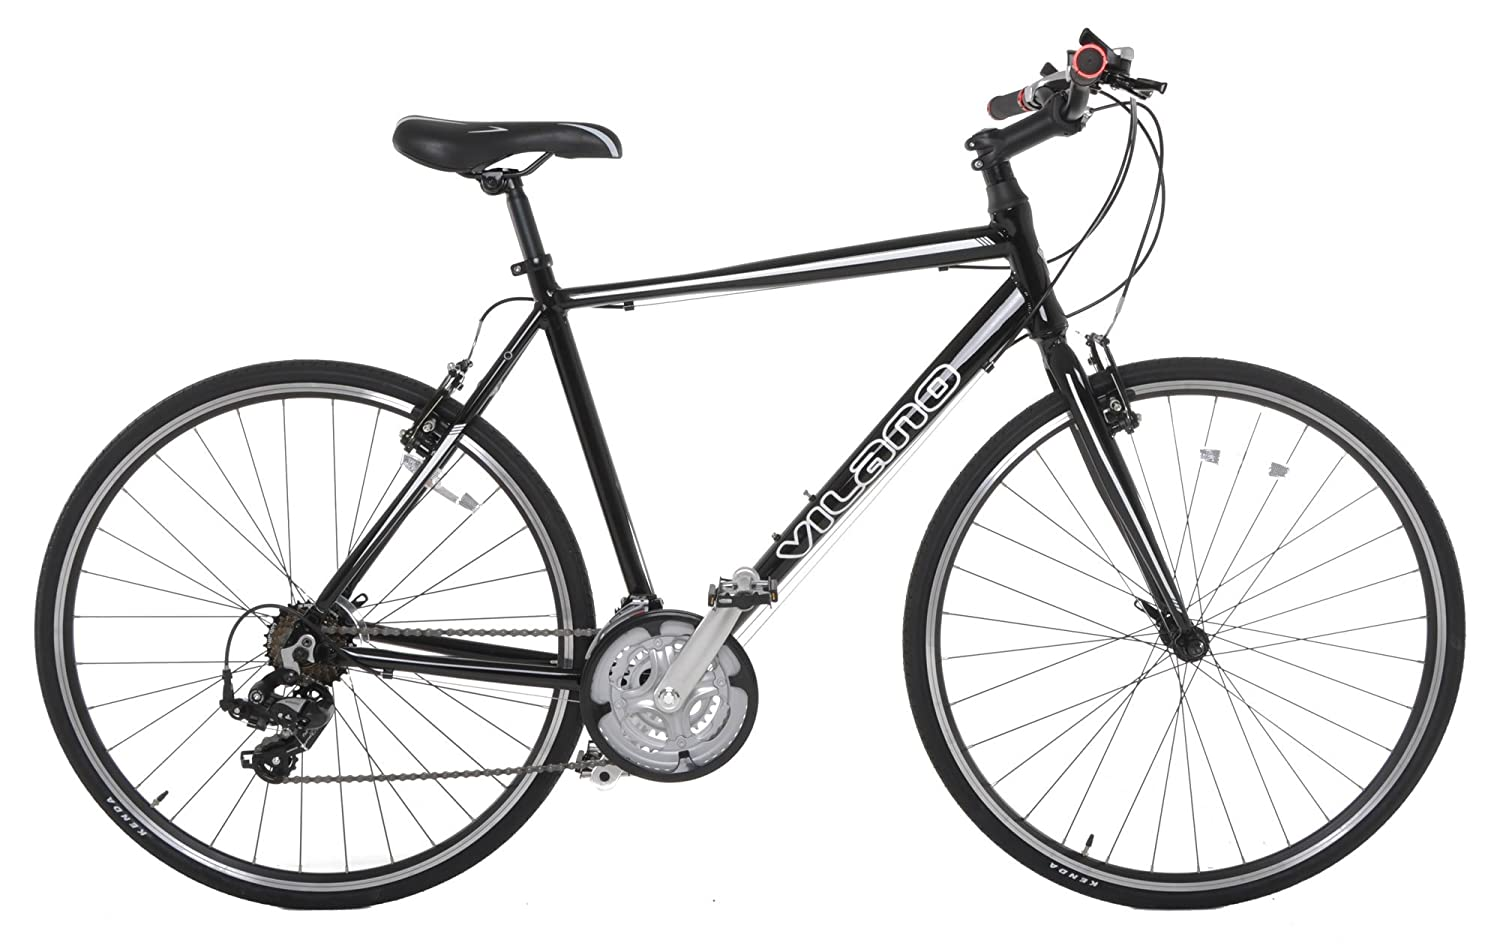 Bikes Hybrid Reviews hybrid bike comes at a